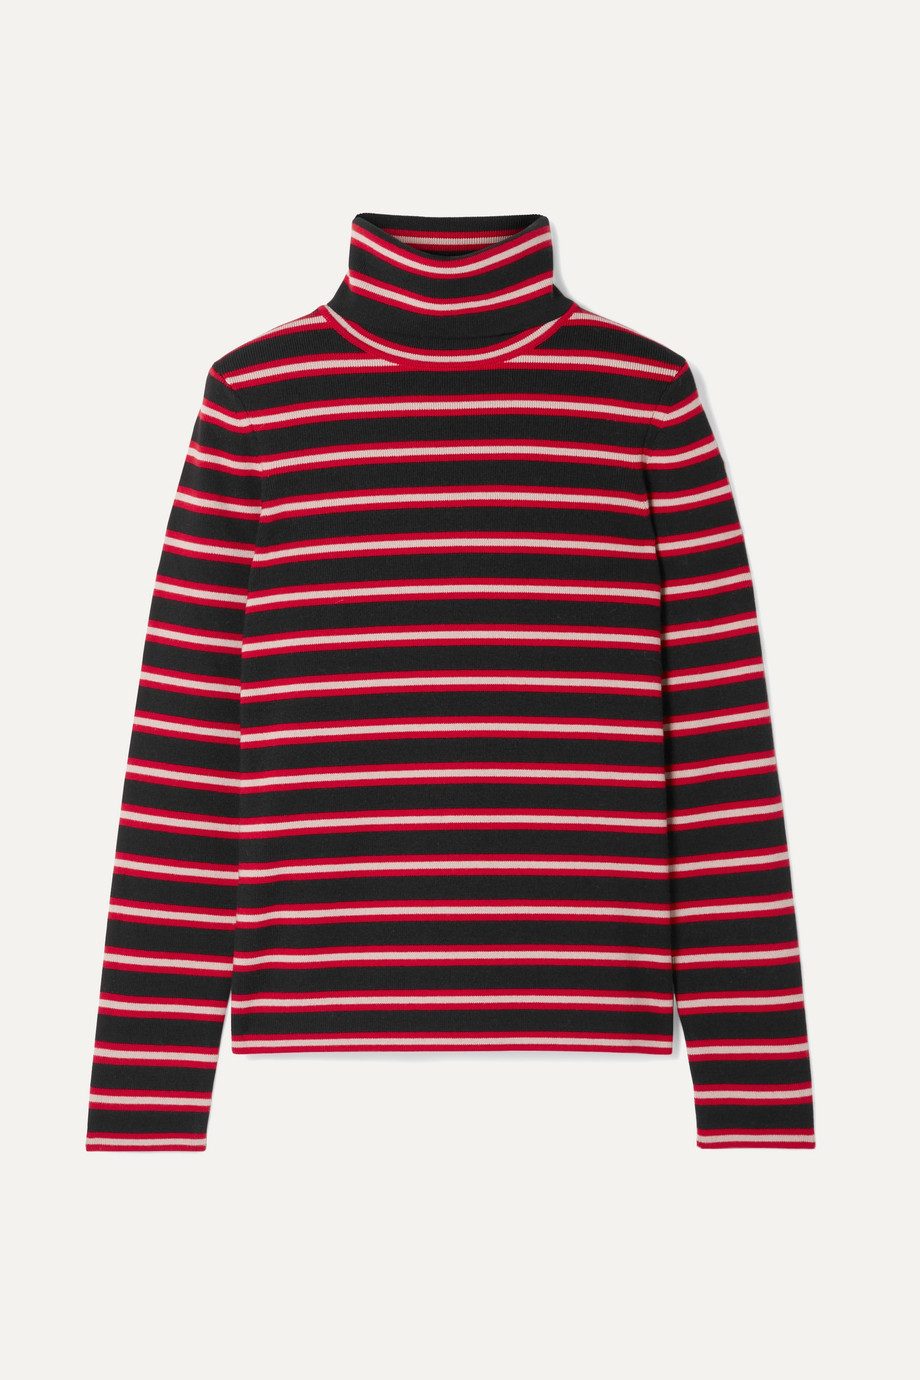 Moncler Genius + 3 Moncler Grenoble striped stretch wool-blend turtleneck top